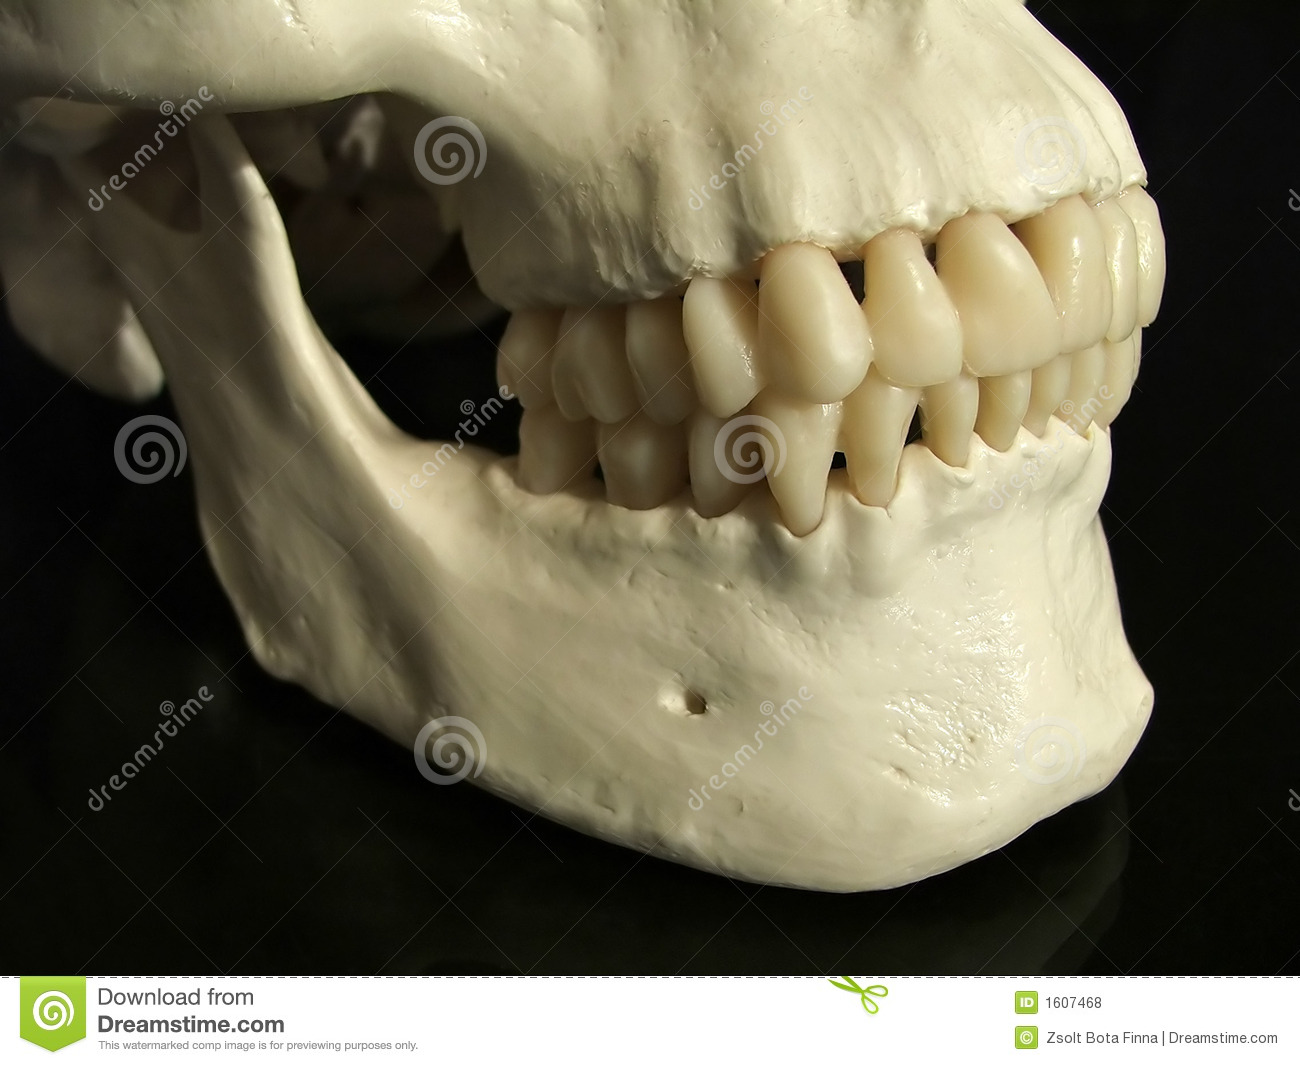 Dental Occlusion Royalty Free Stock Photos - Image: 1607468